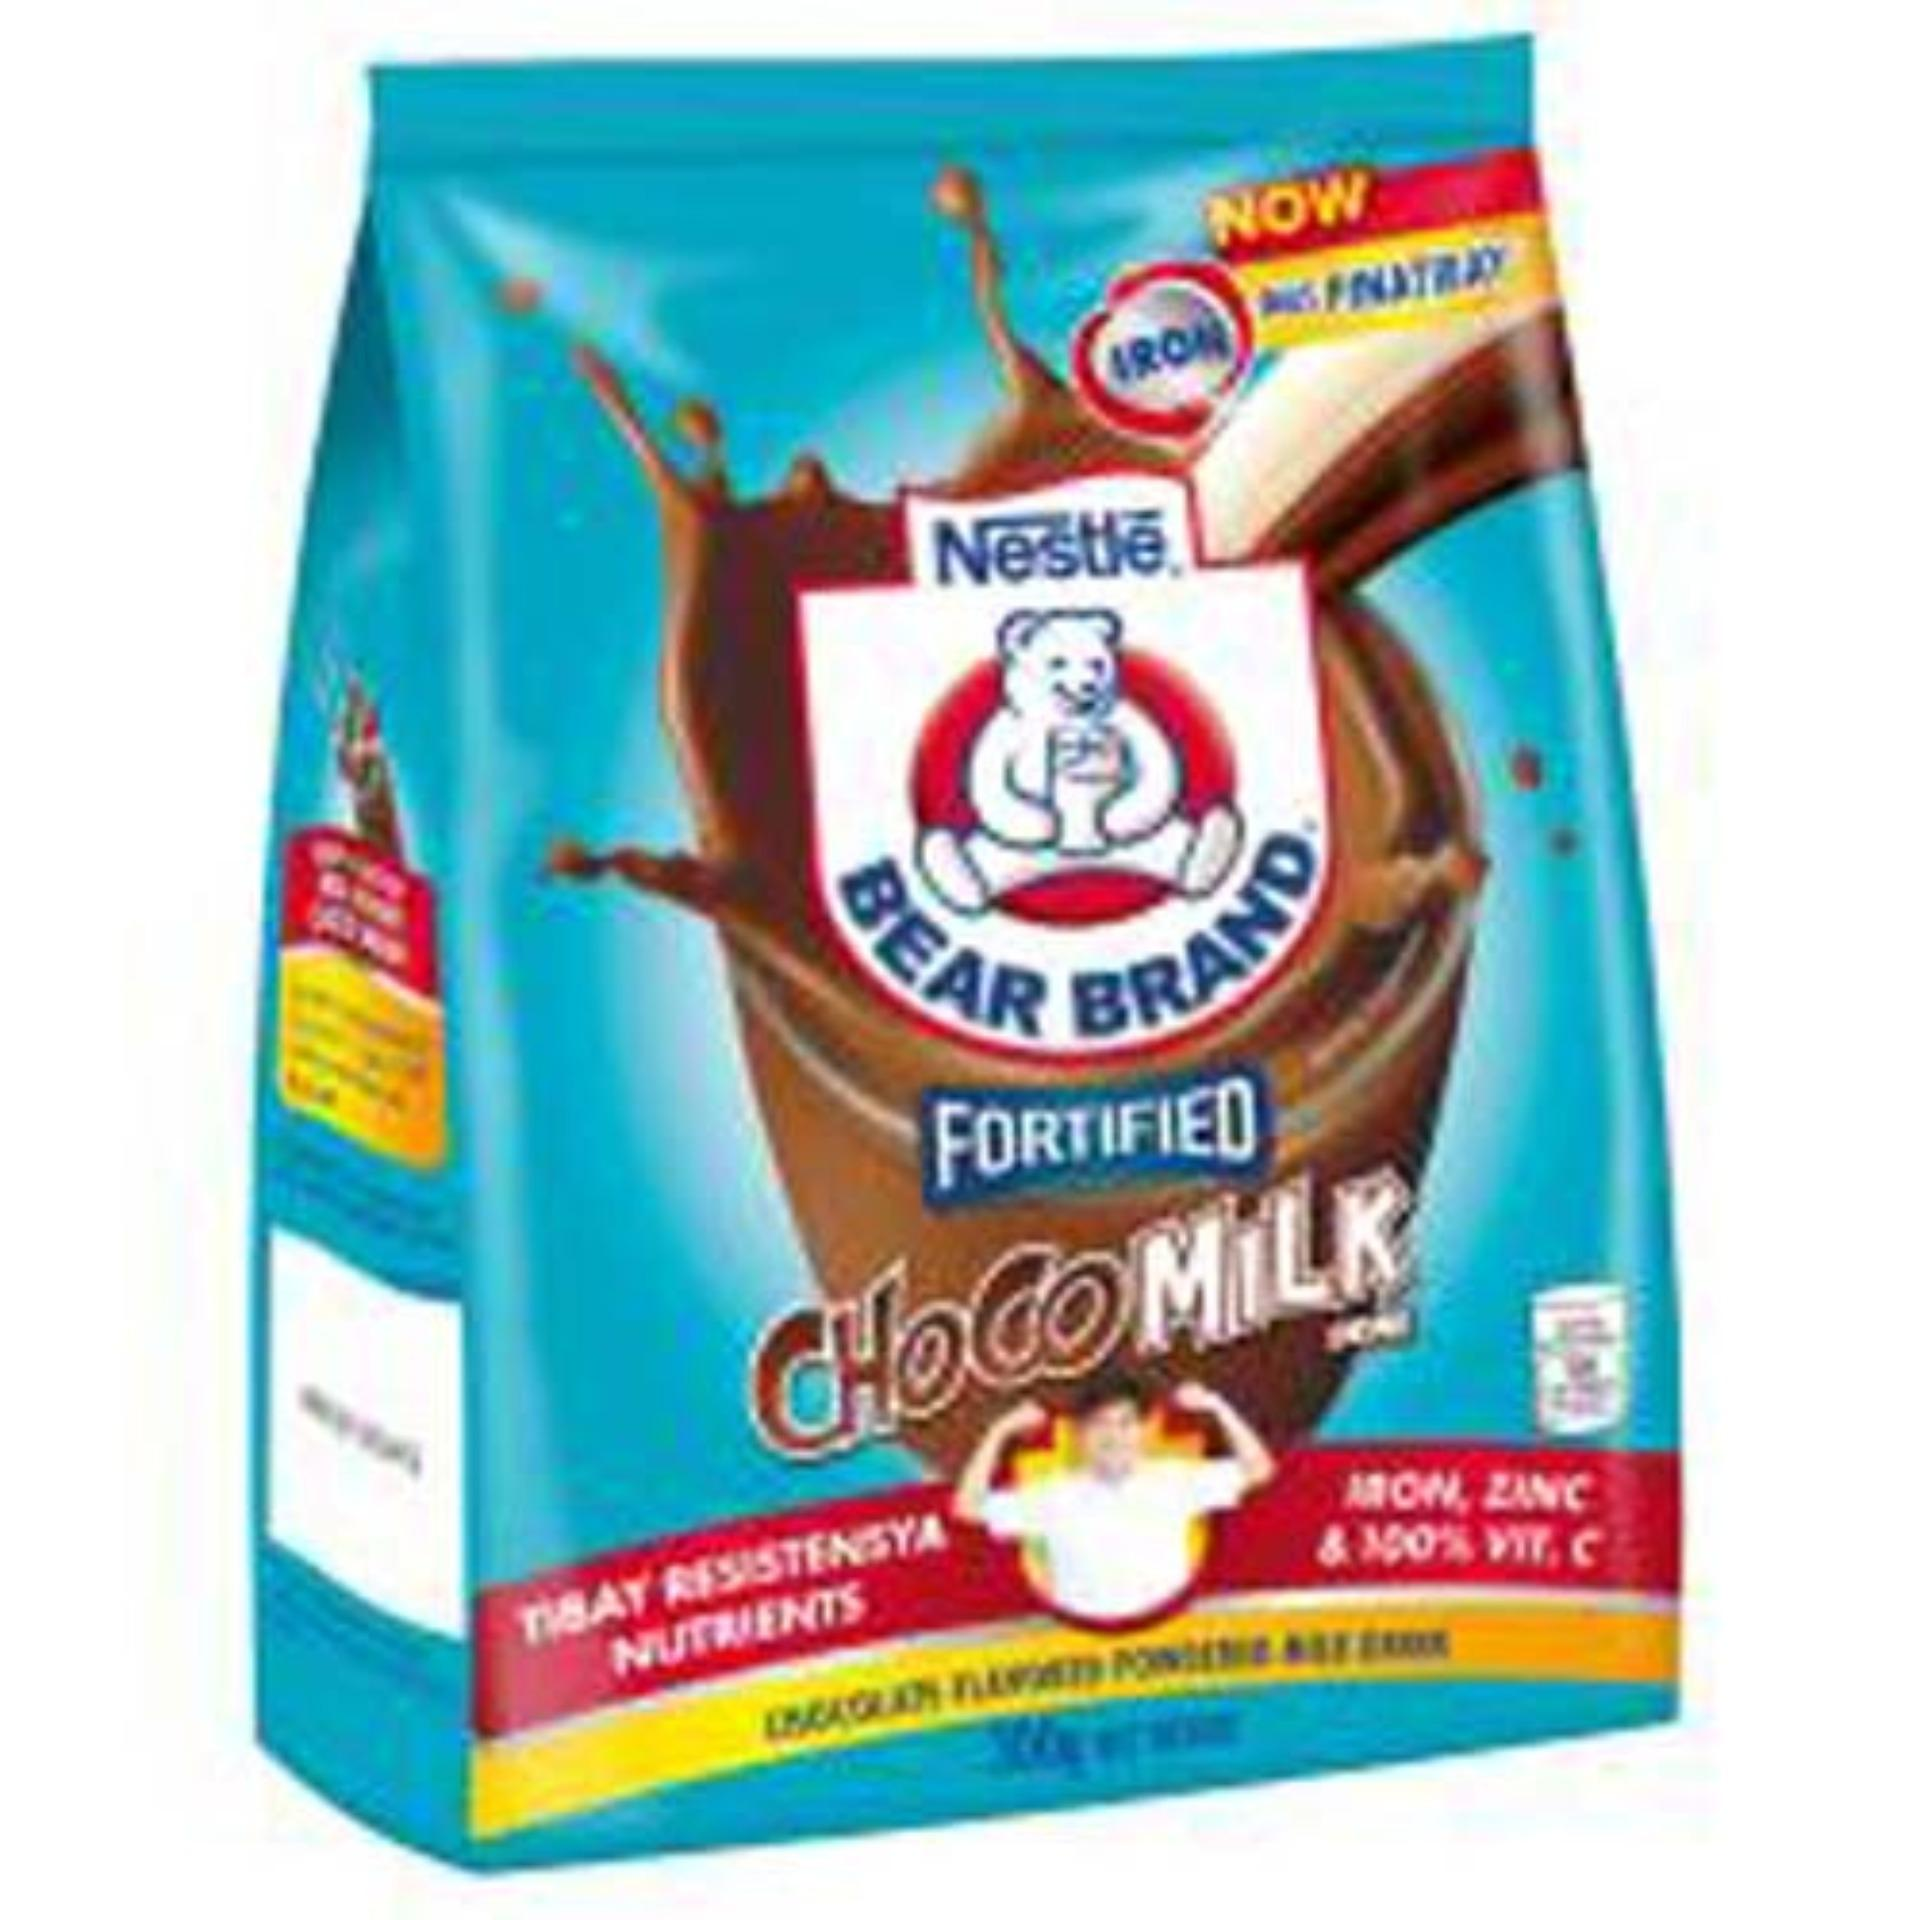 Bear Brand Choco Milk Drink 300g (pack Of 2) By Nestle Official Store.